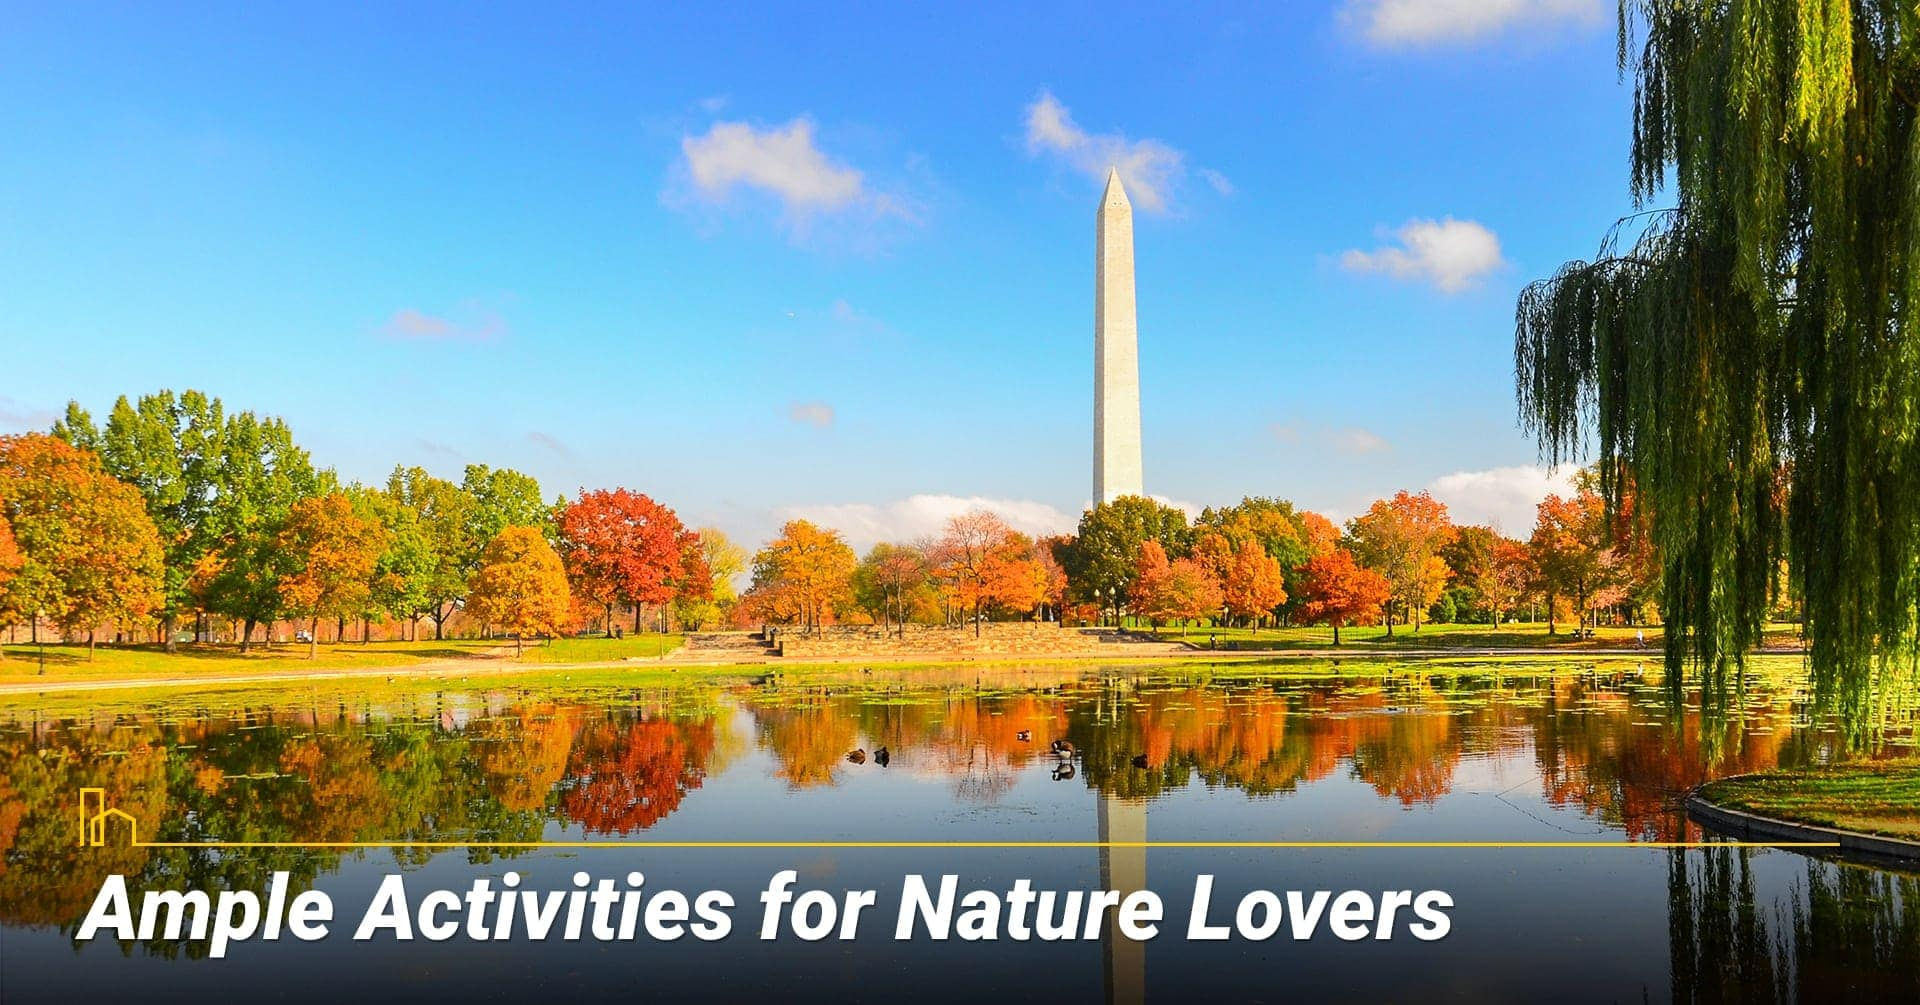 Ample Activities for Nature Lovers in Washington, DC